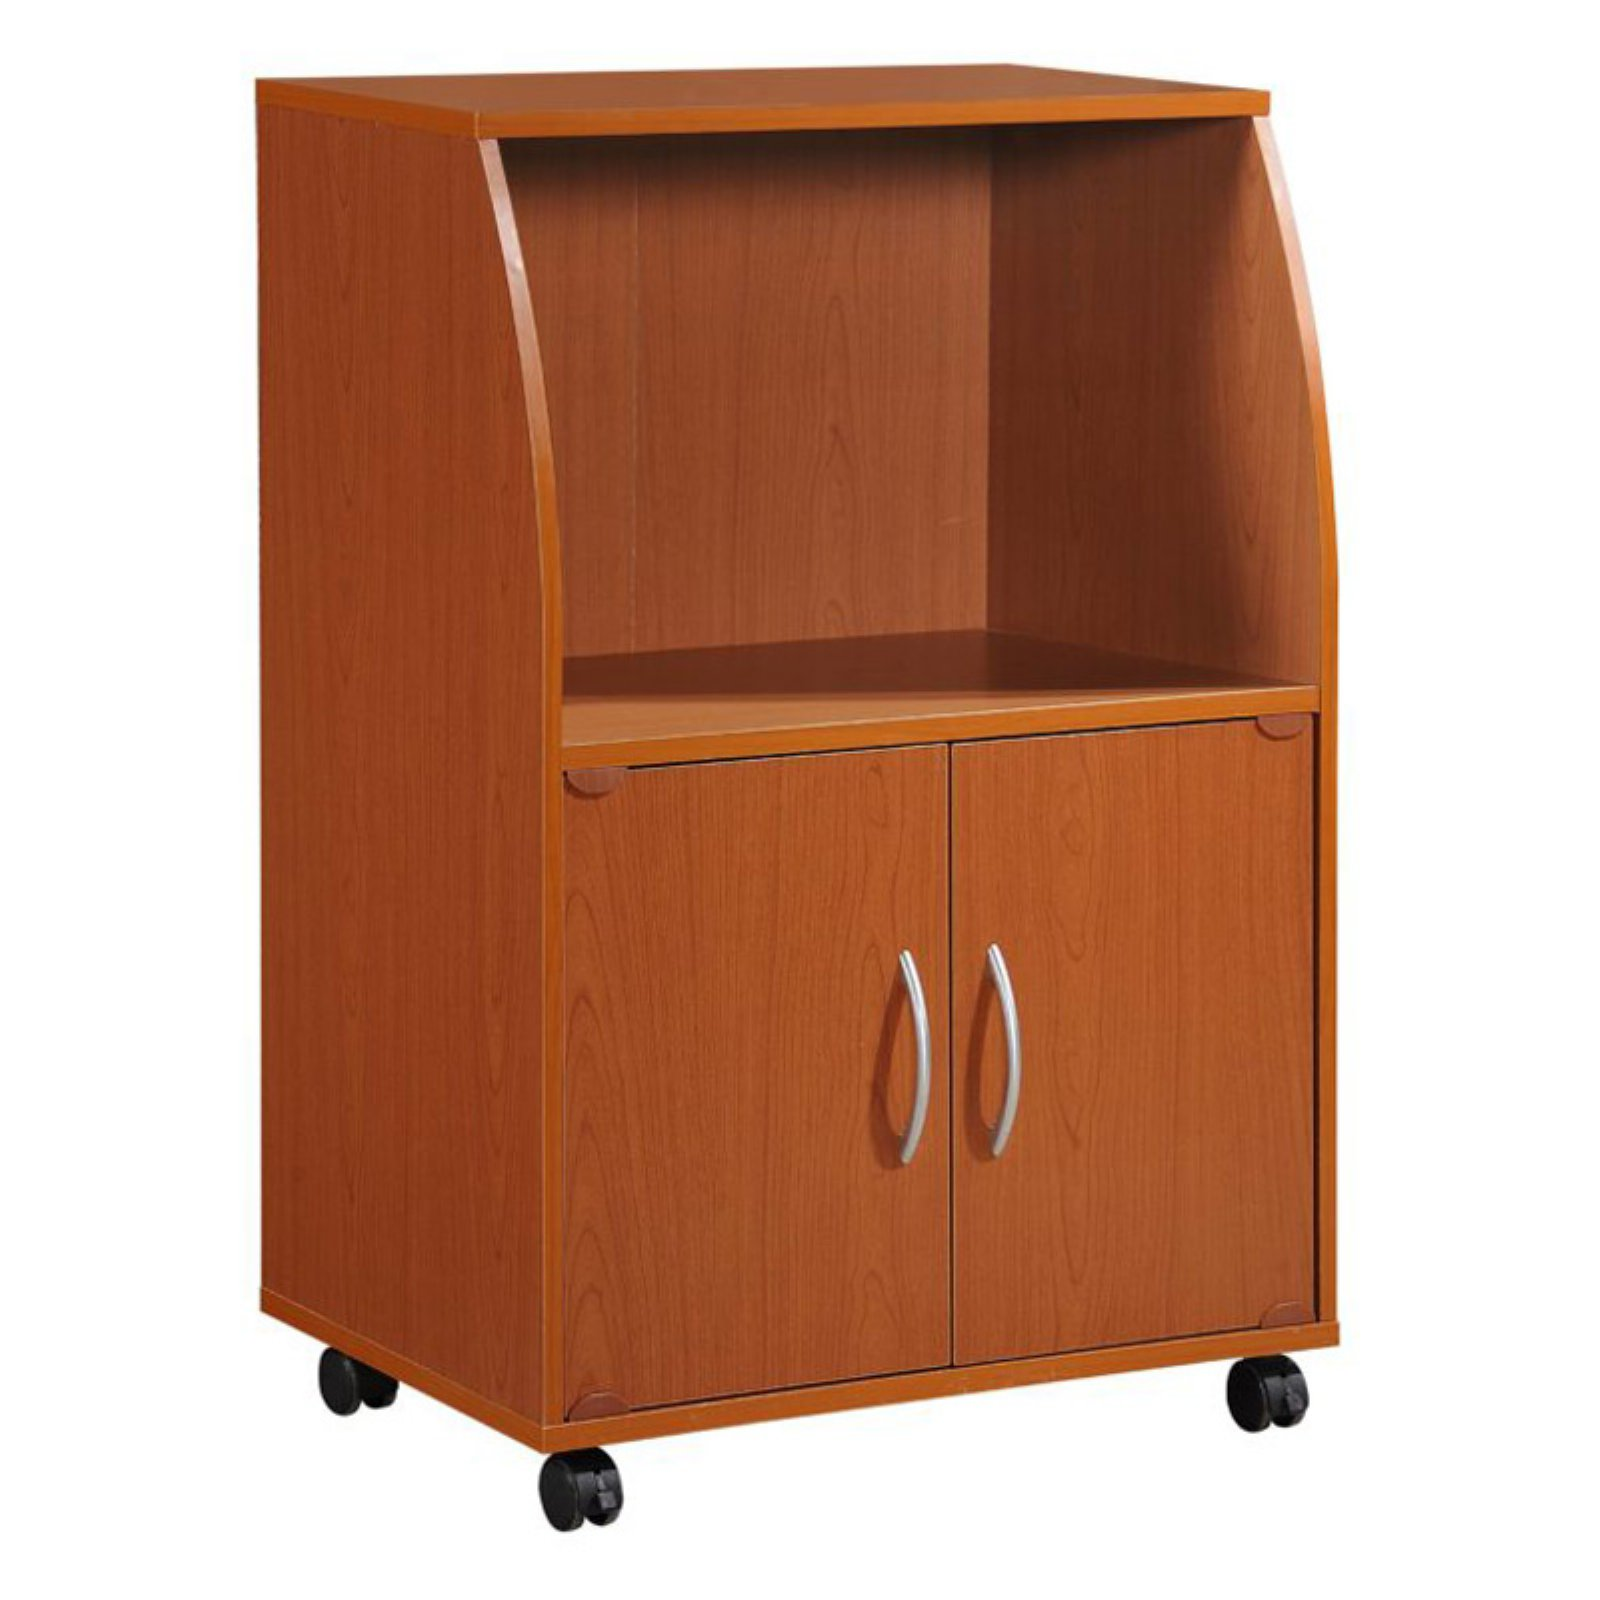 Hodedah 2-Door Microwave Cart